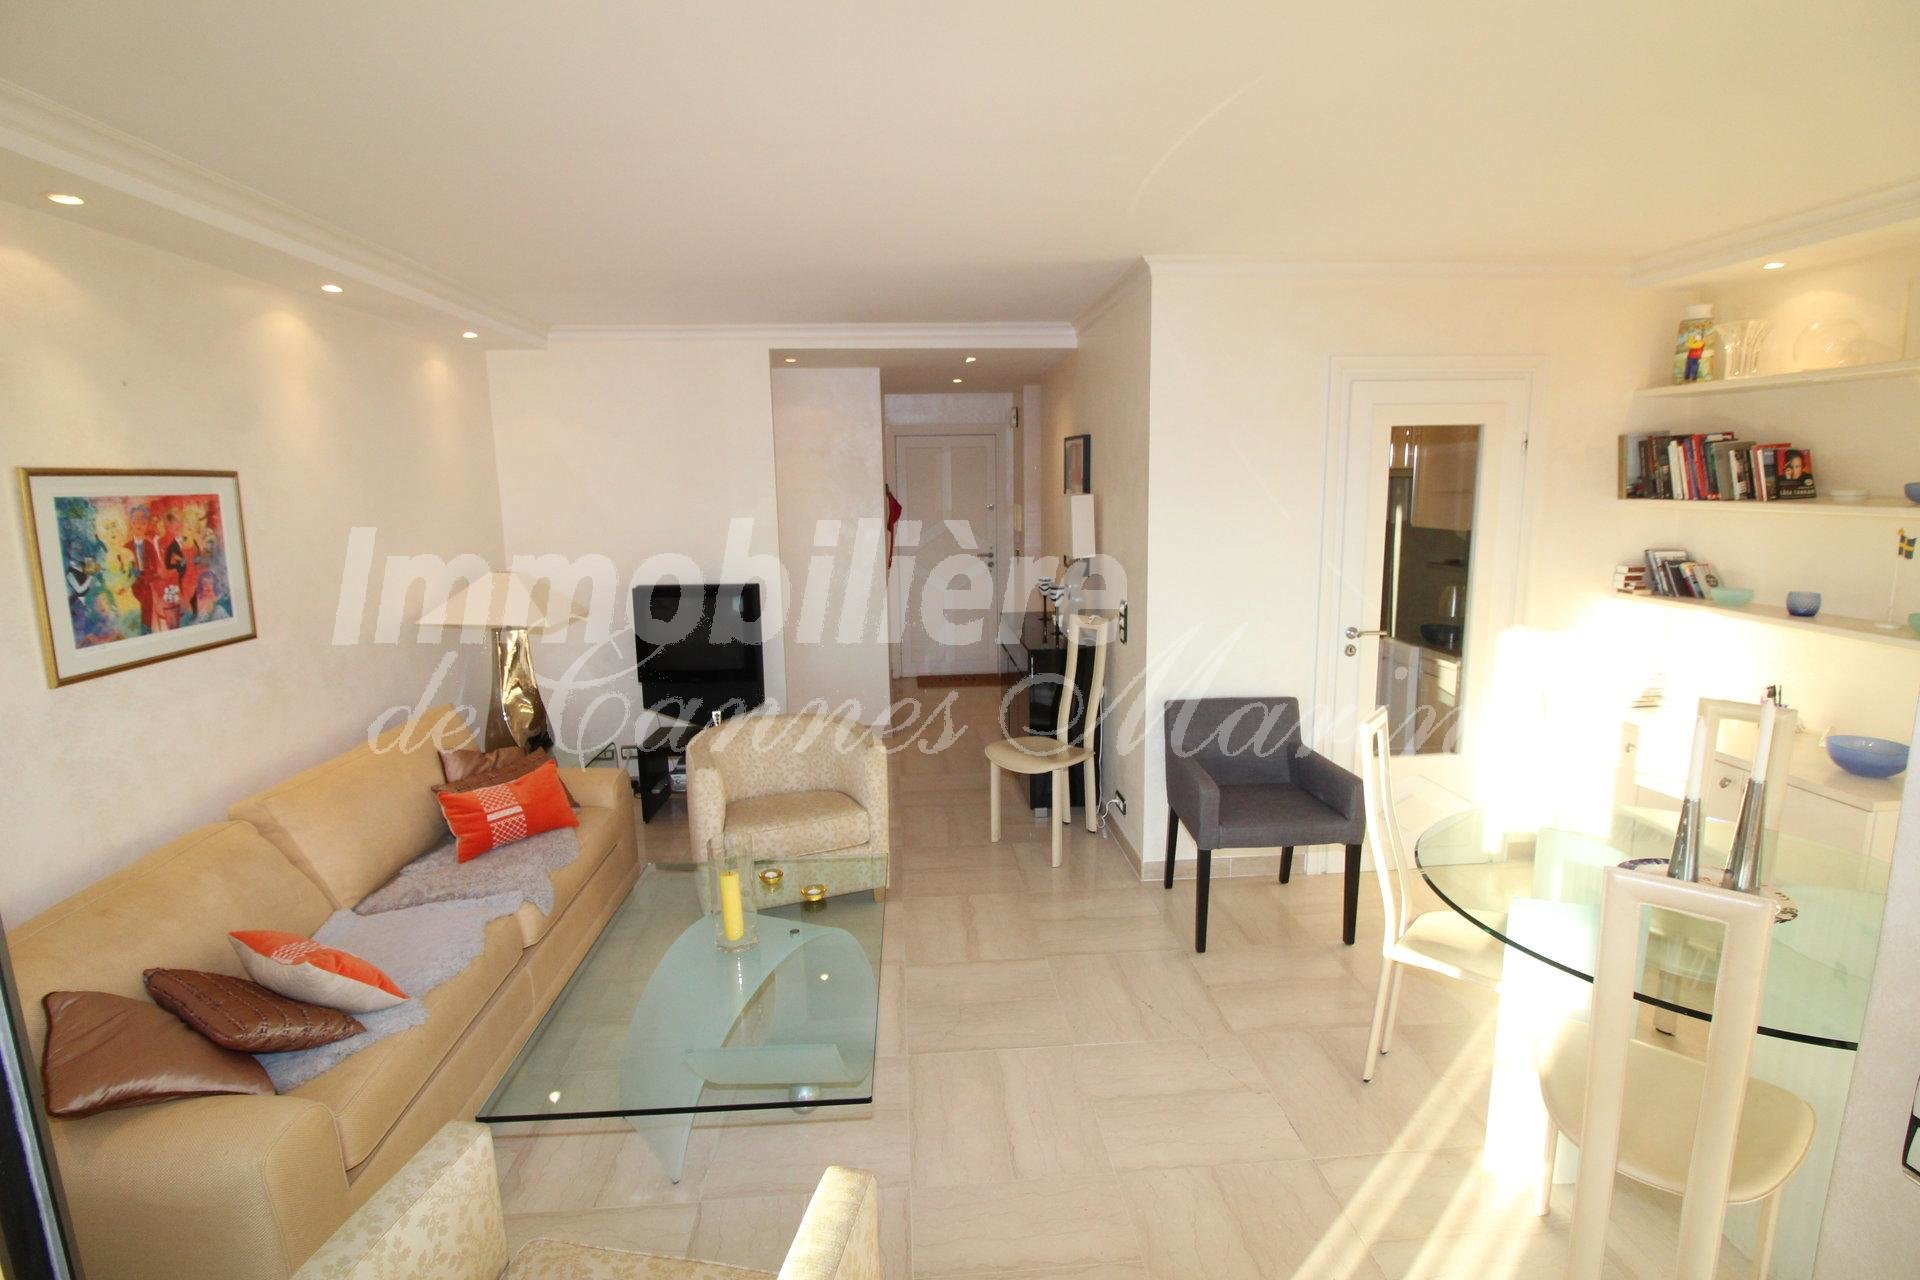 FULL SOUTH SUN EXPOSURE - 1 BEDROOM APARTMENT -  IN PERFECT CONDITION